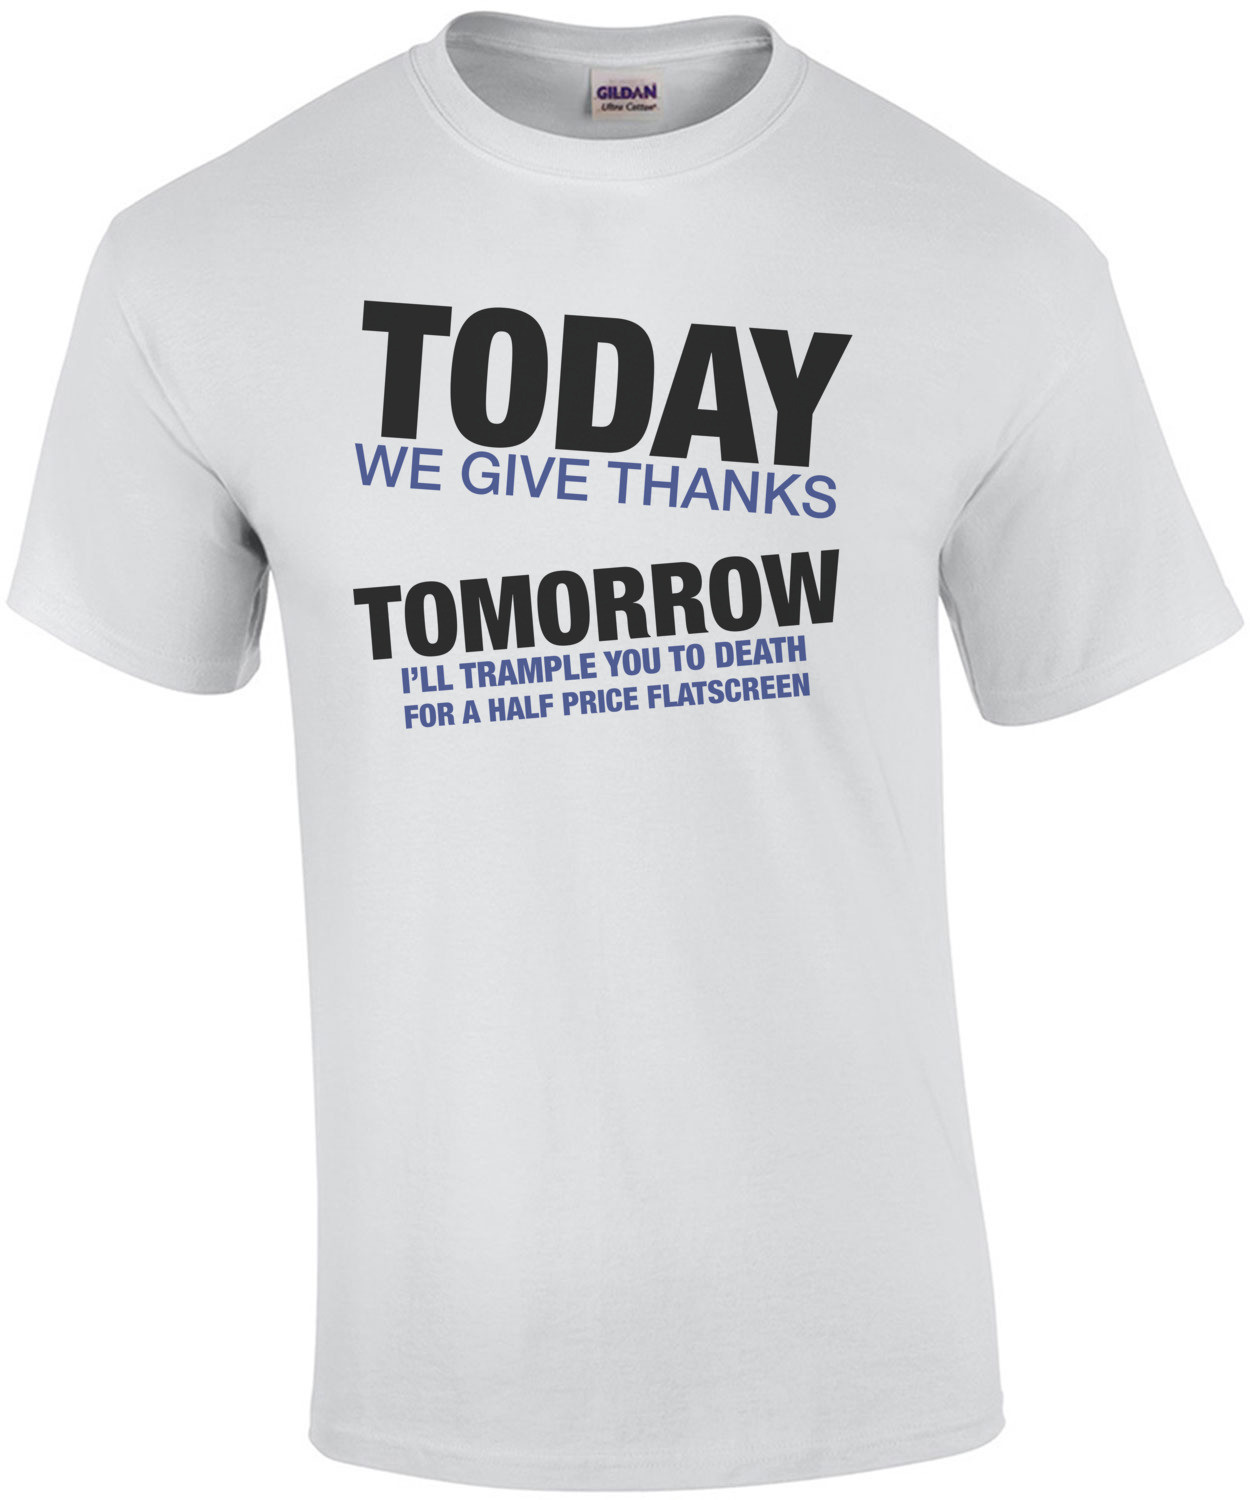 Today We Give Thanks, Tomorrow I'll Trample You To Death T-Shirt